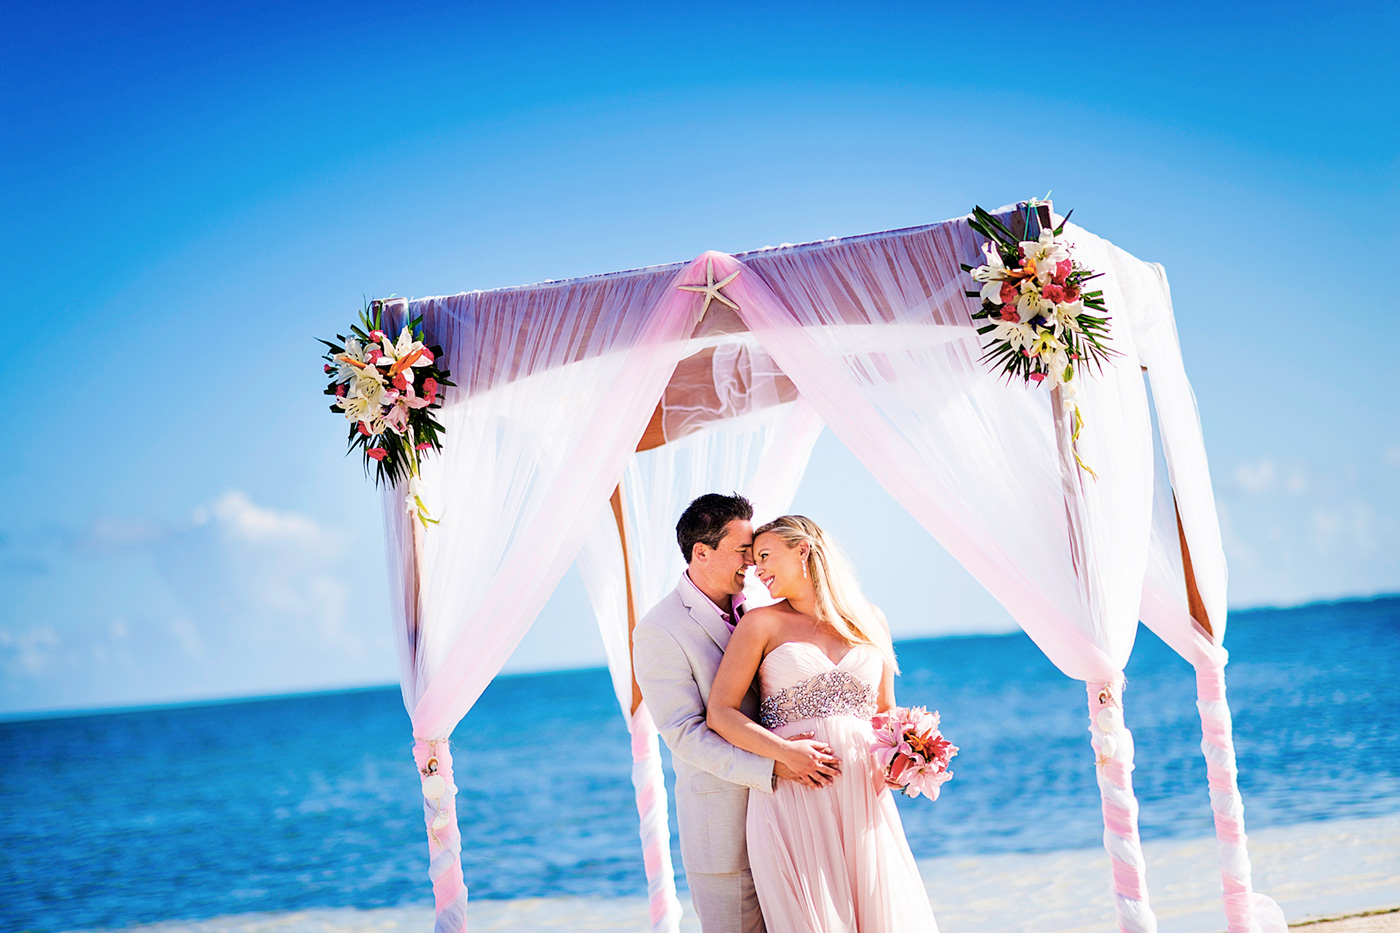 belize weddings wedding packages and honeymoons